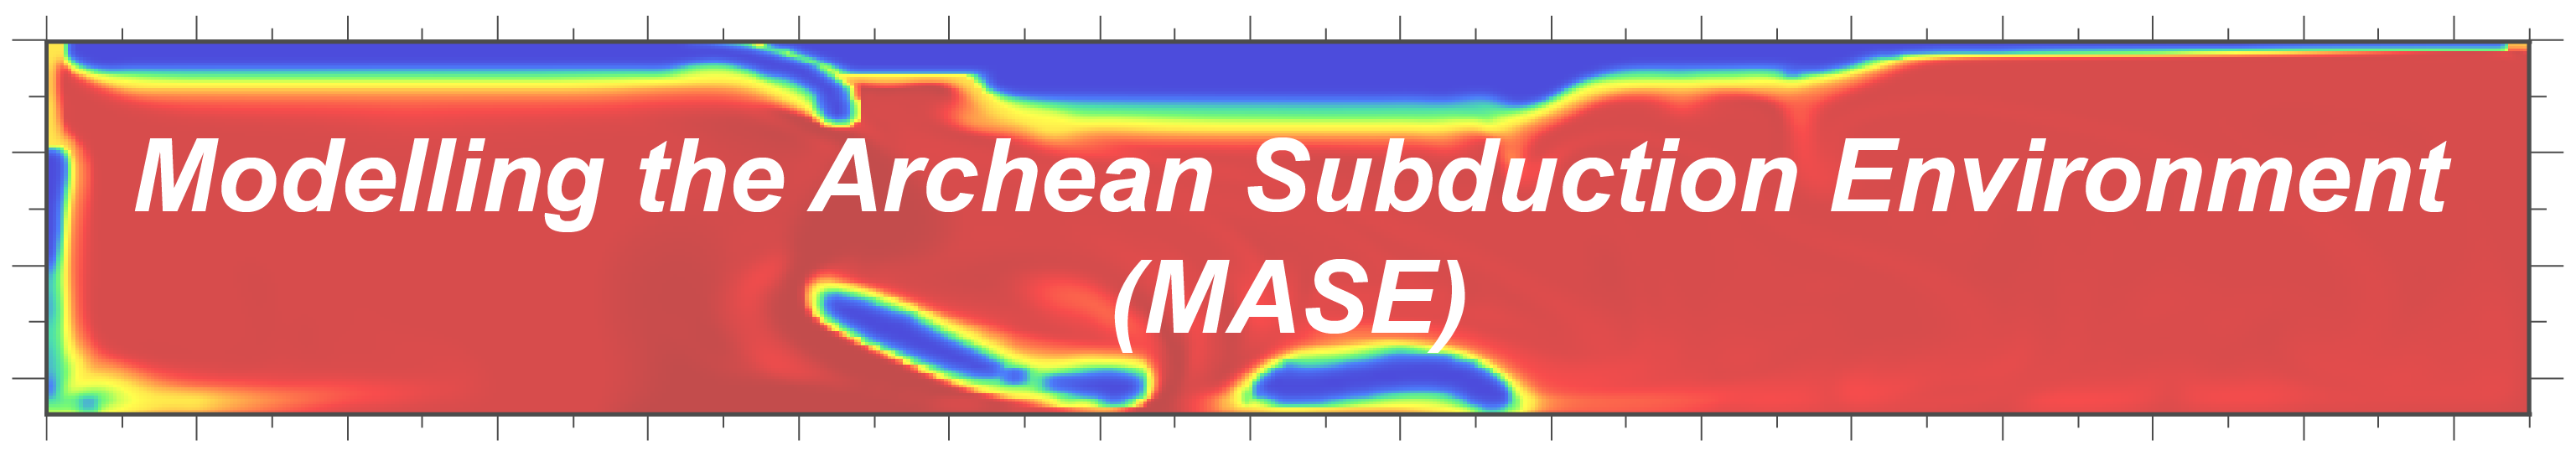 Modelling the Archean Subduction Environment (MASE)